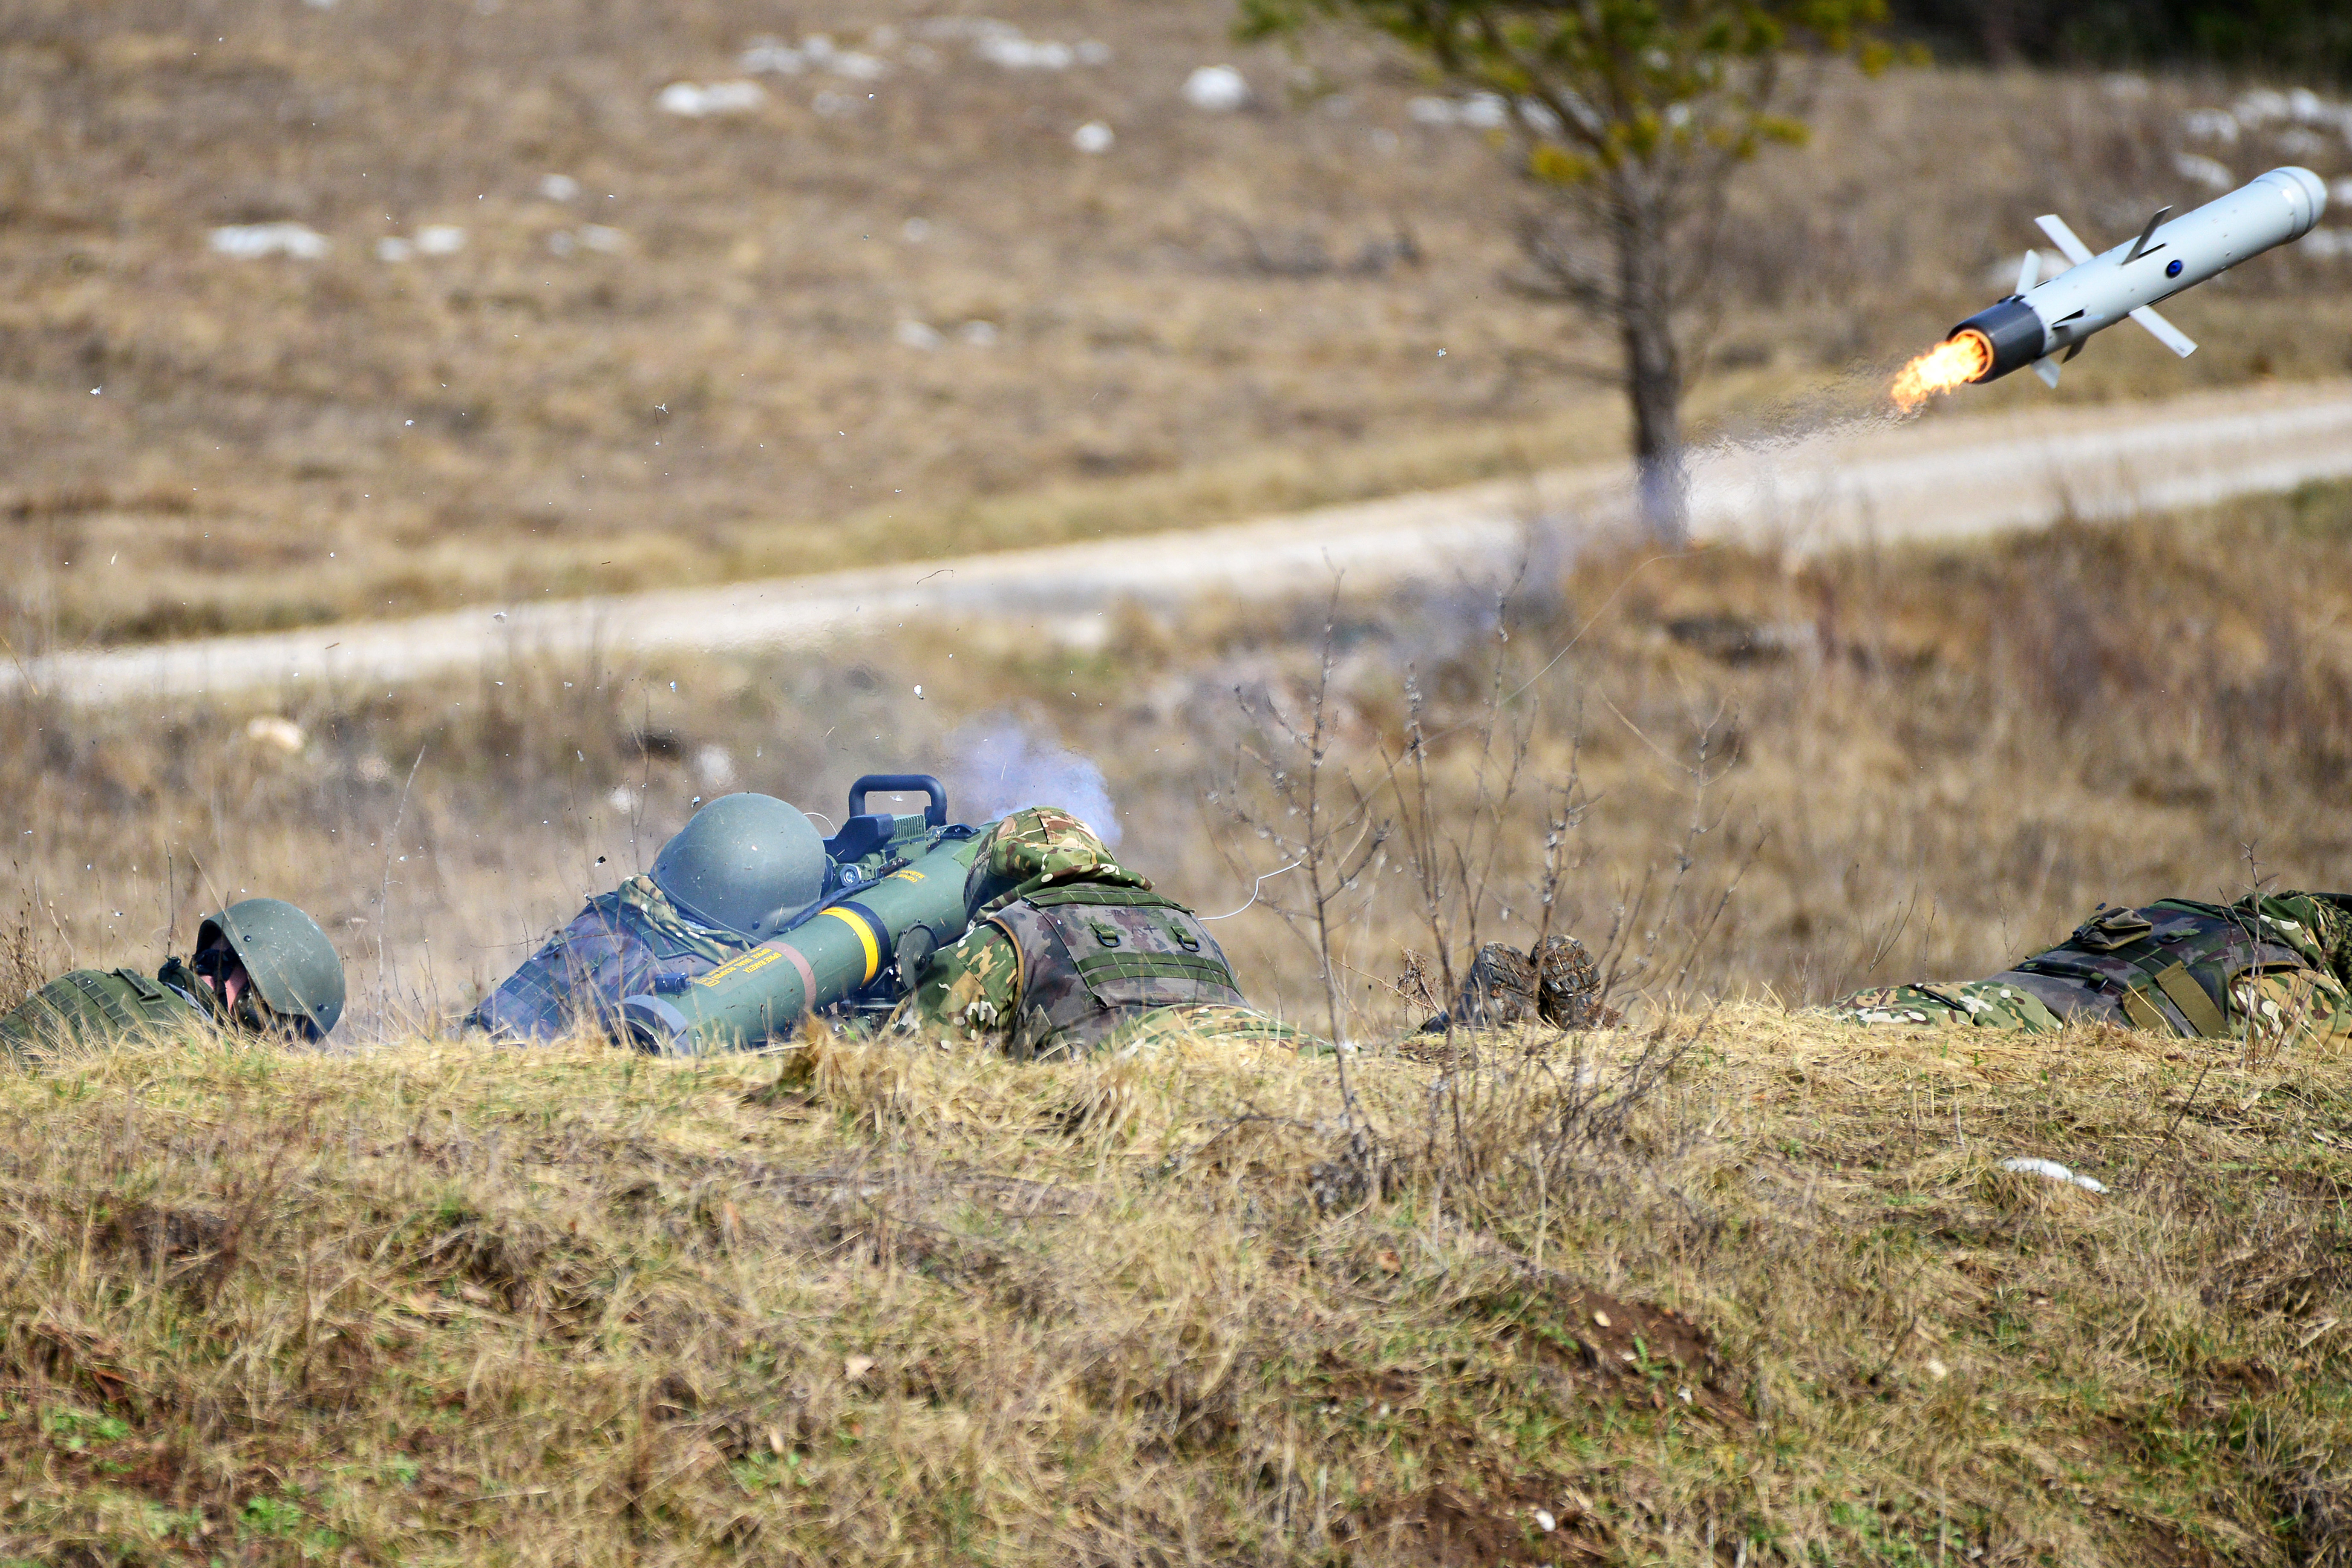 Slovenian soldiers engage targets with a Spike long-range anti-tank guidance missile during a live-fire exercise. (Visual Information Specialist Davide Dalla Massara/U.S. Army)